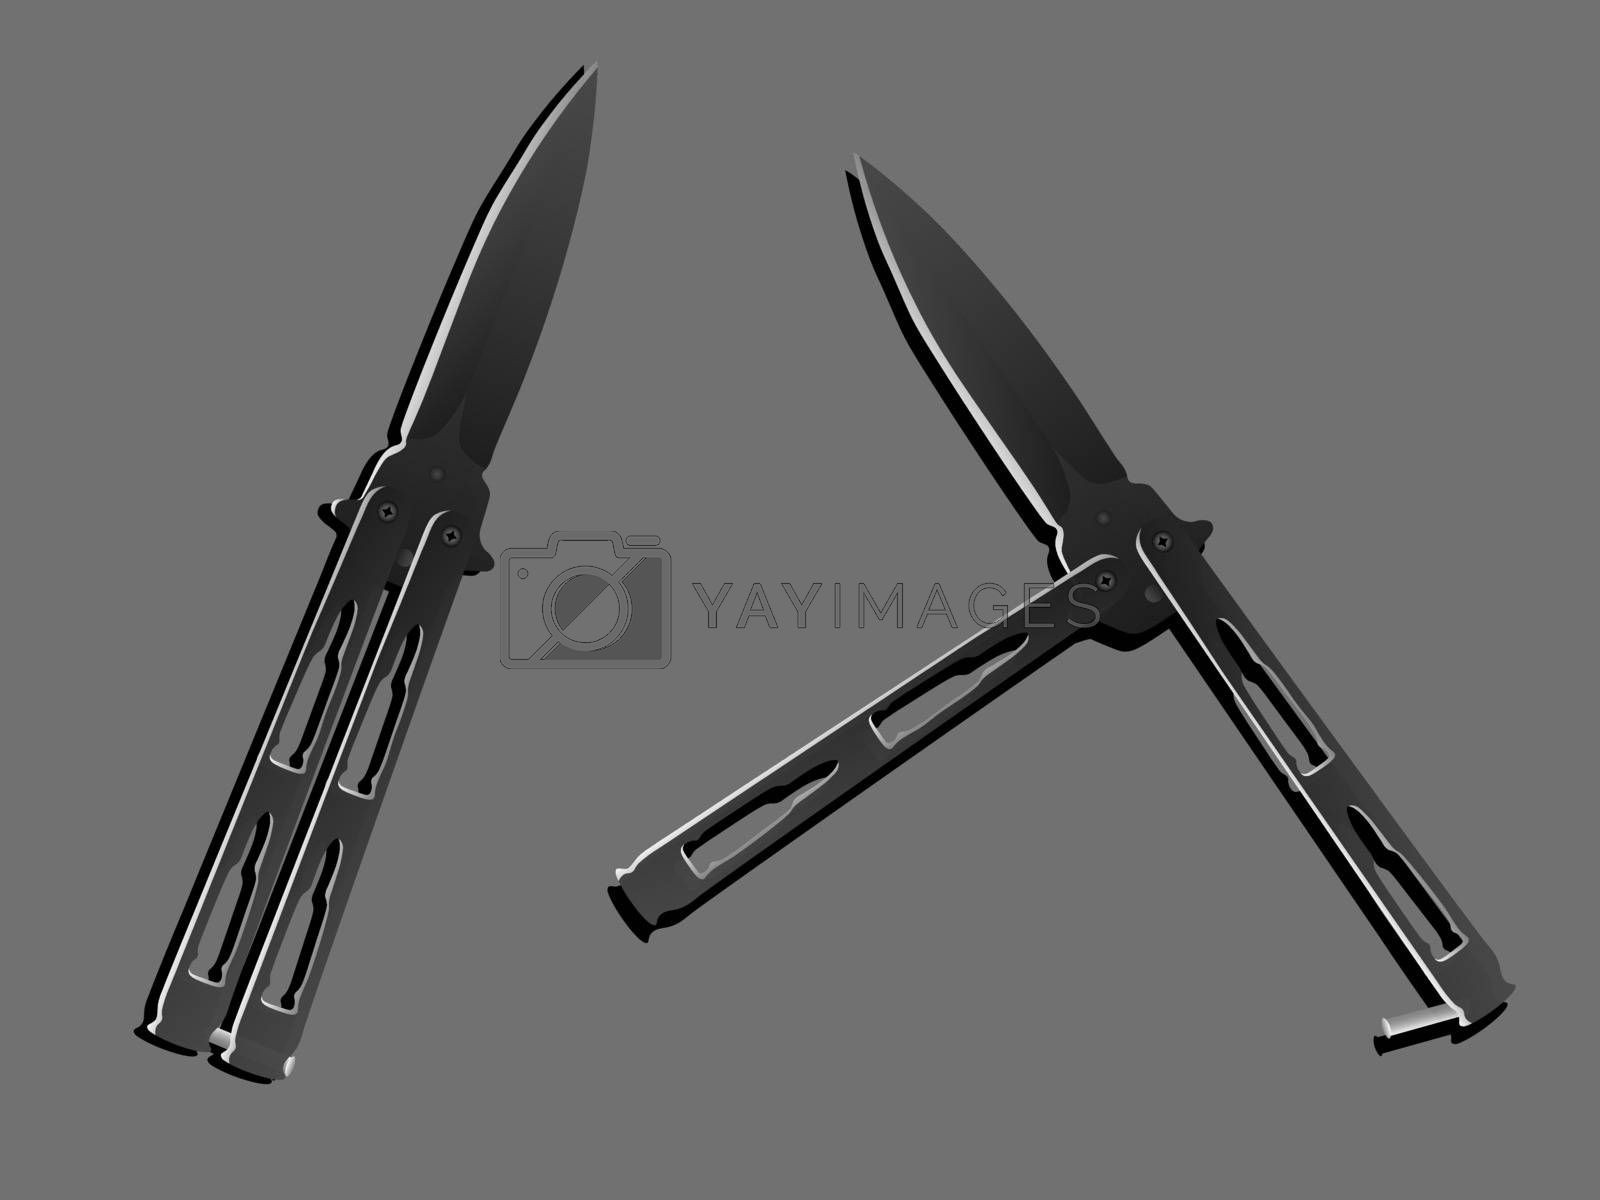 Two realistic black balisongs or butterfly knives in two positions on grey background